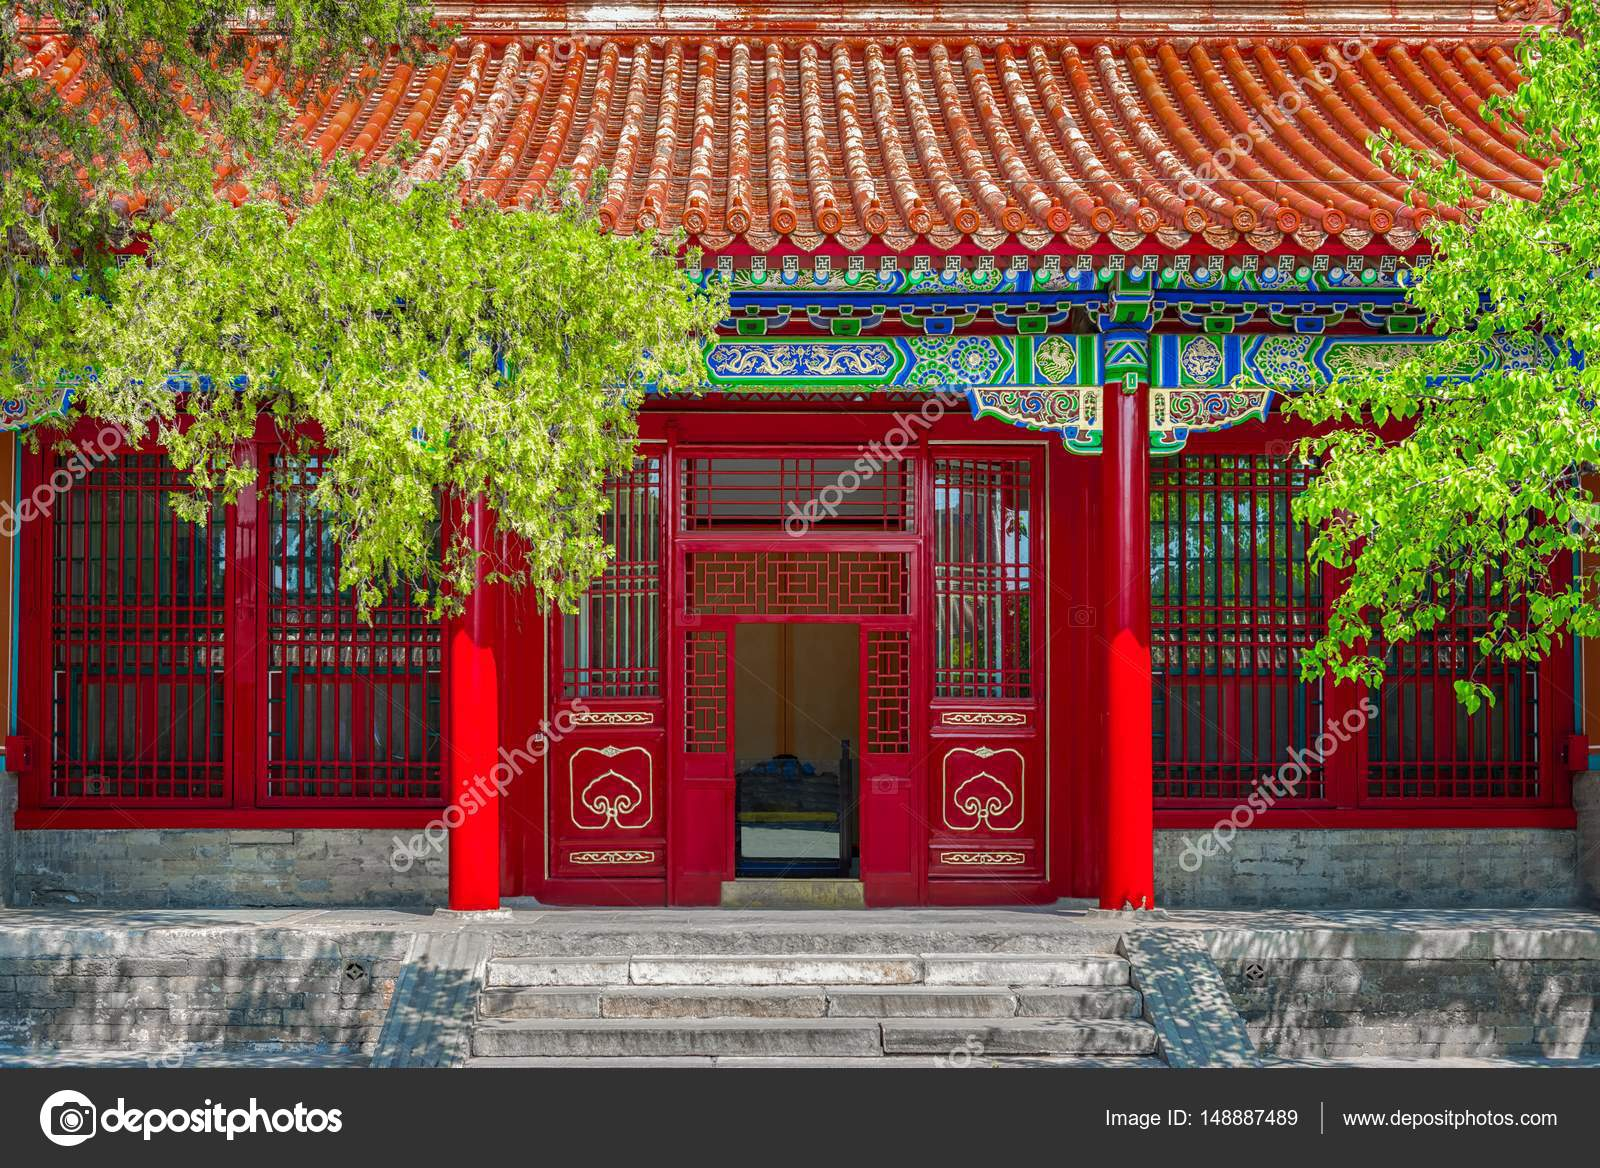 Gateway with red Chinese doors \u2014 Stock Photo & Gateway with red Chinese doors \u2014 Stock Photo © svedoliver #148887489